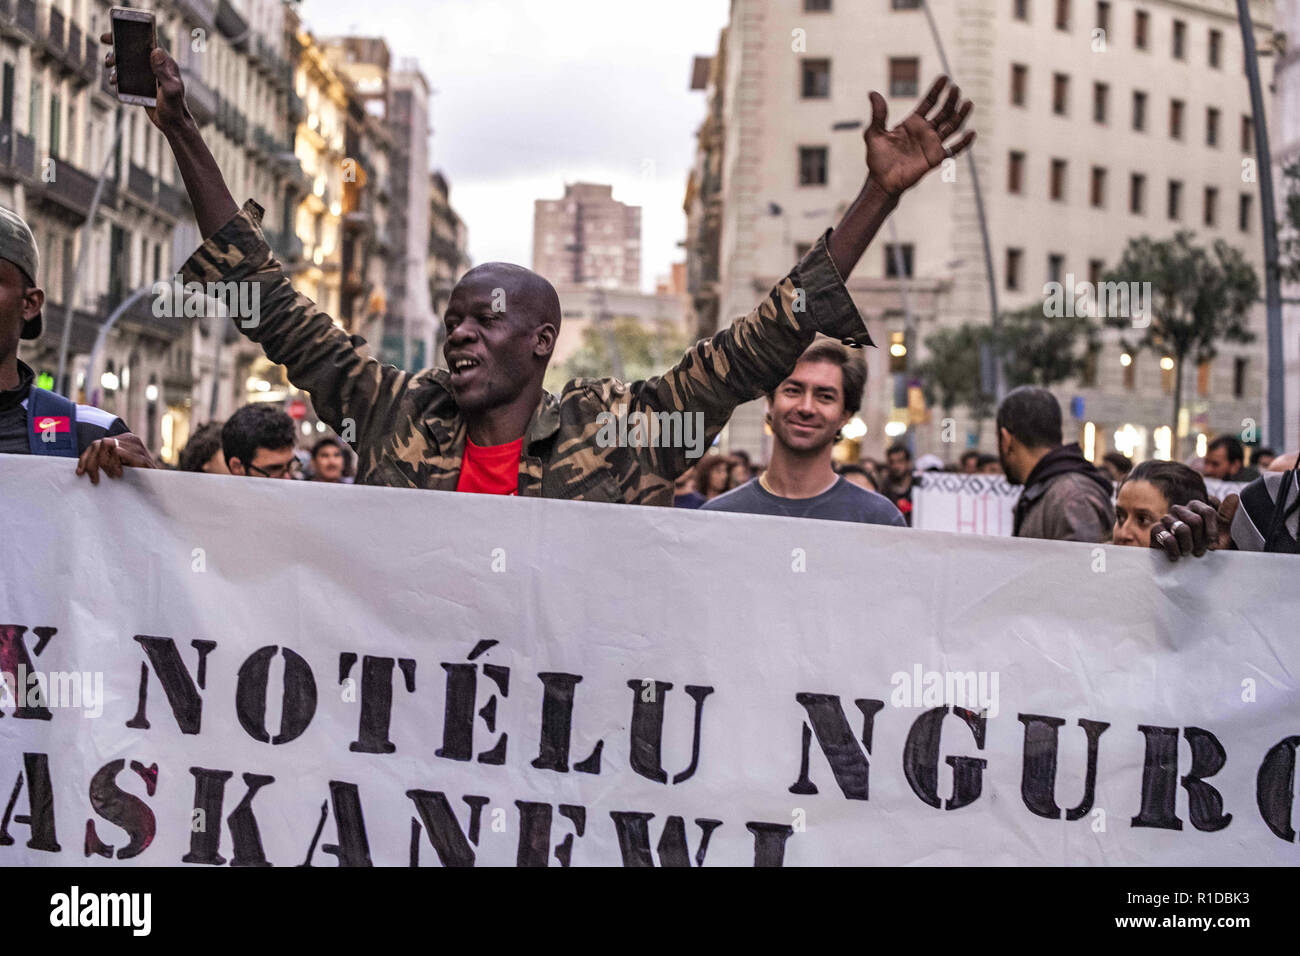 Barcelona, Catalonia, Spain. 11th Nov, 2018. A black man is seen raising his hands during the demonstration.A new manifestation against institutional racism has crossed the streets of the center of Barcelona. Accompanied by social organizations and the Trade Union of street vendors, more than 500 people have claimed to end racism in Barcelona and have denounced police identifications according to the color of their skin. Credit: Paco Freire/SOPA Images/ZUMA Wire/Alamy Live News - Stock Image